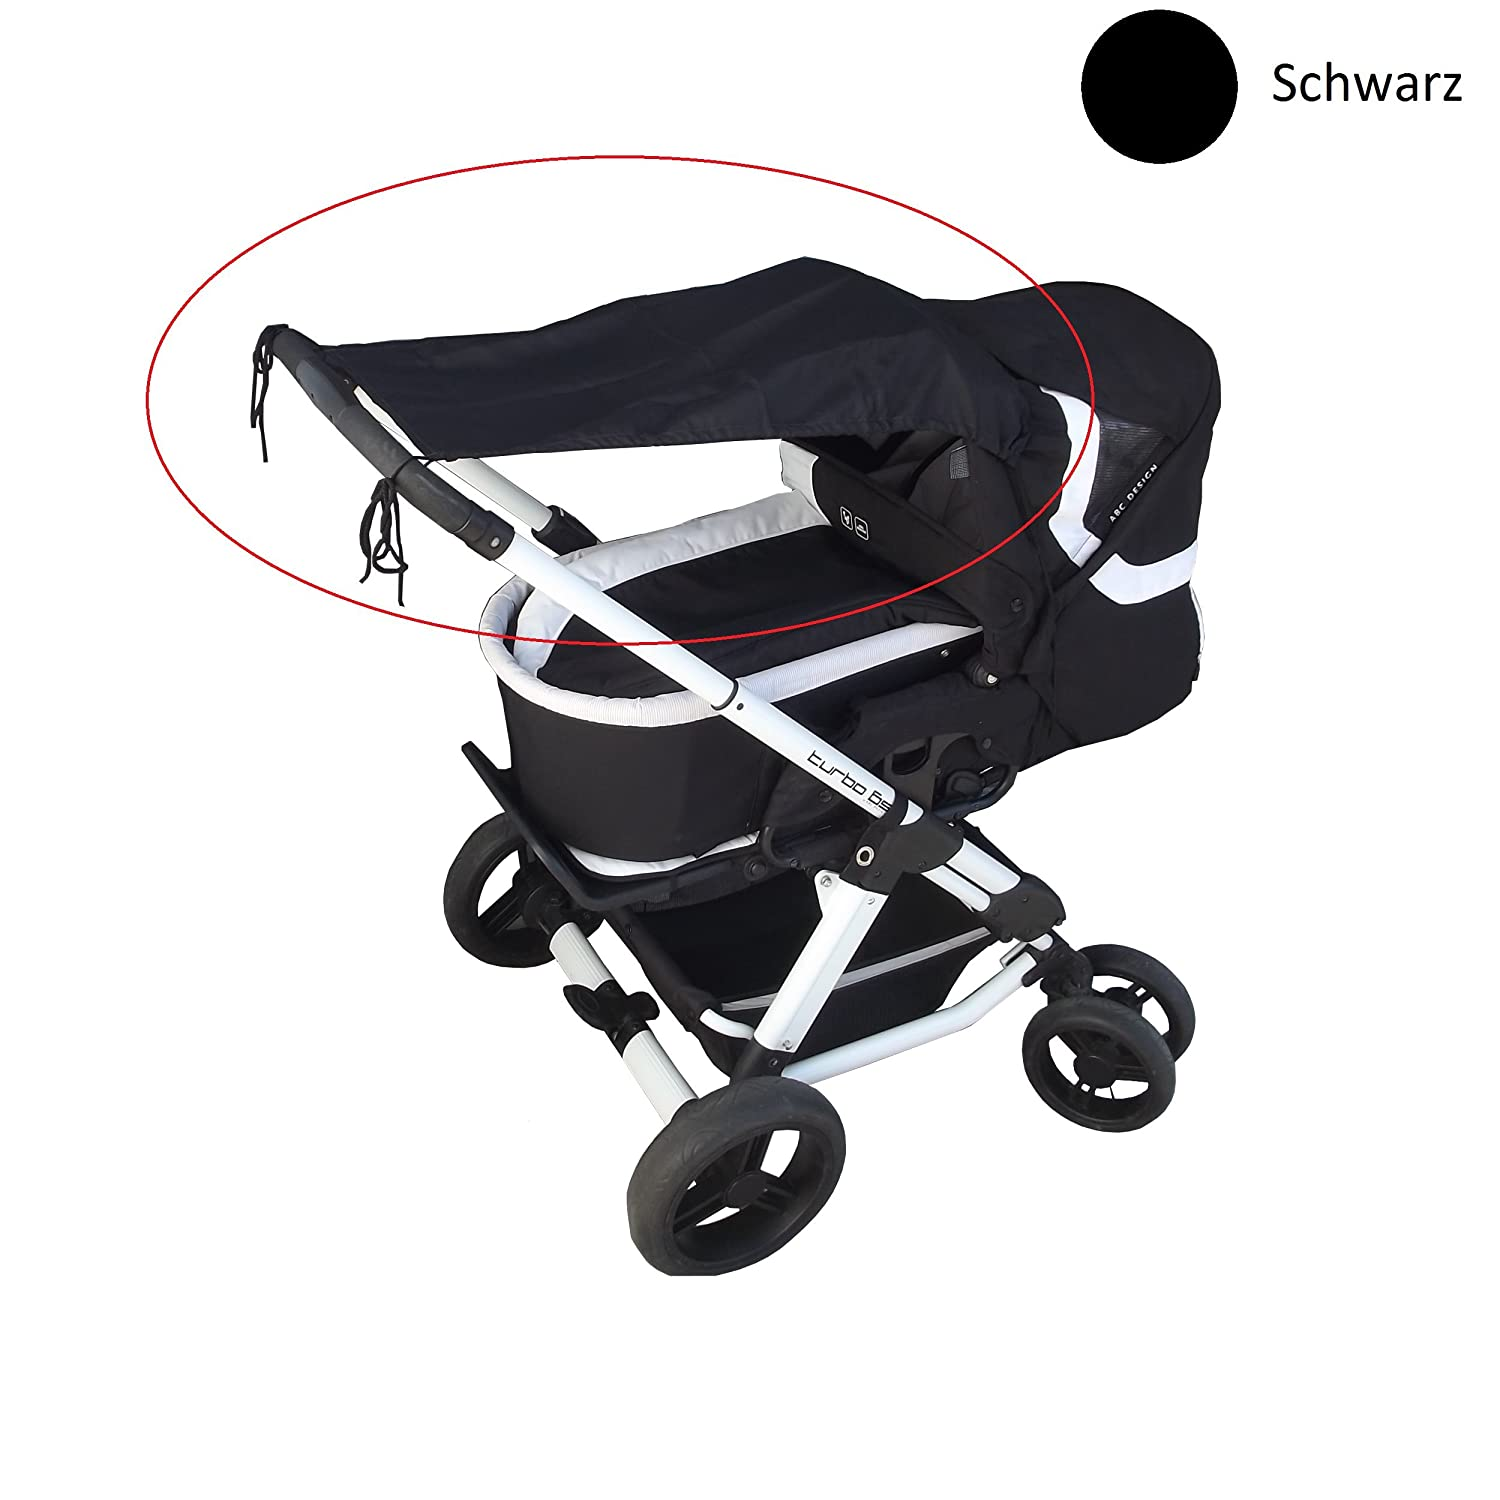 UV protection 50+ Smart-Planet high quality sun sail // sun protection universal suitable for all standard baby carriages and sports cars color: black high quality sun protection